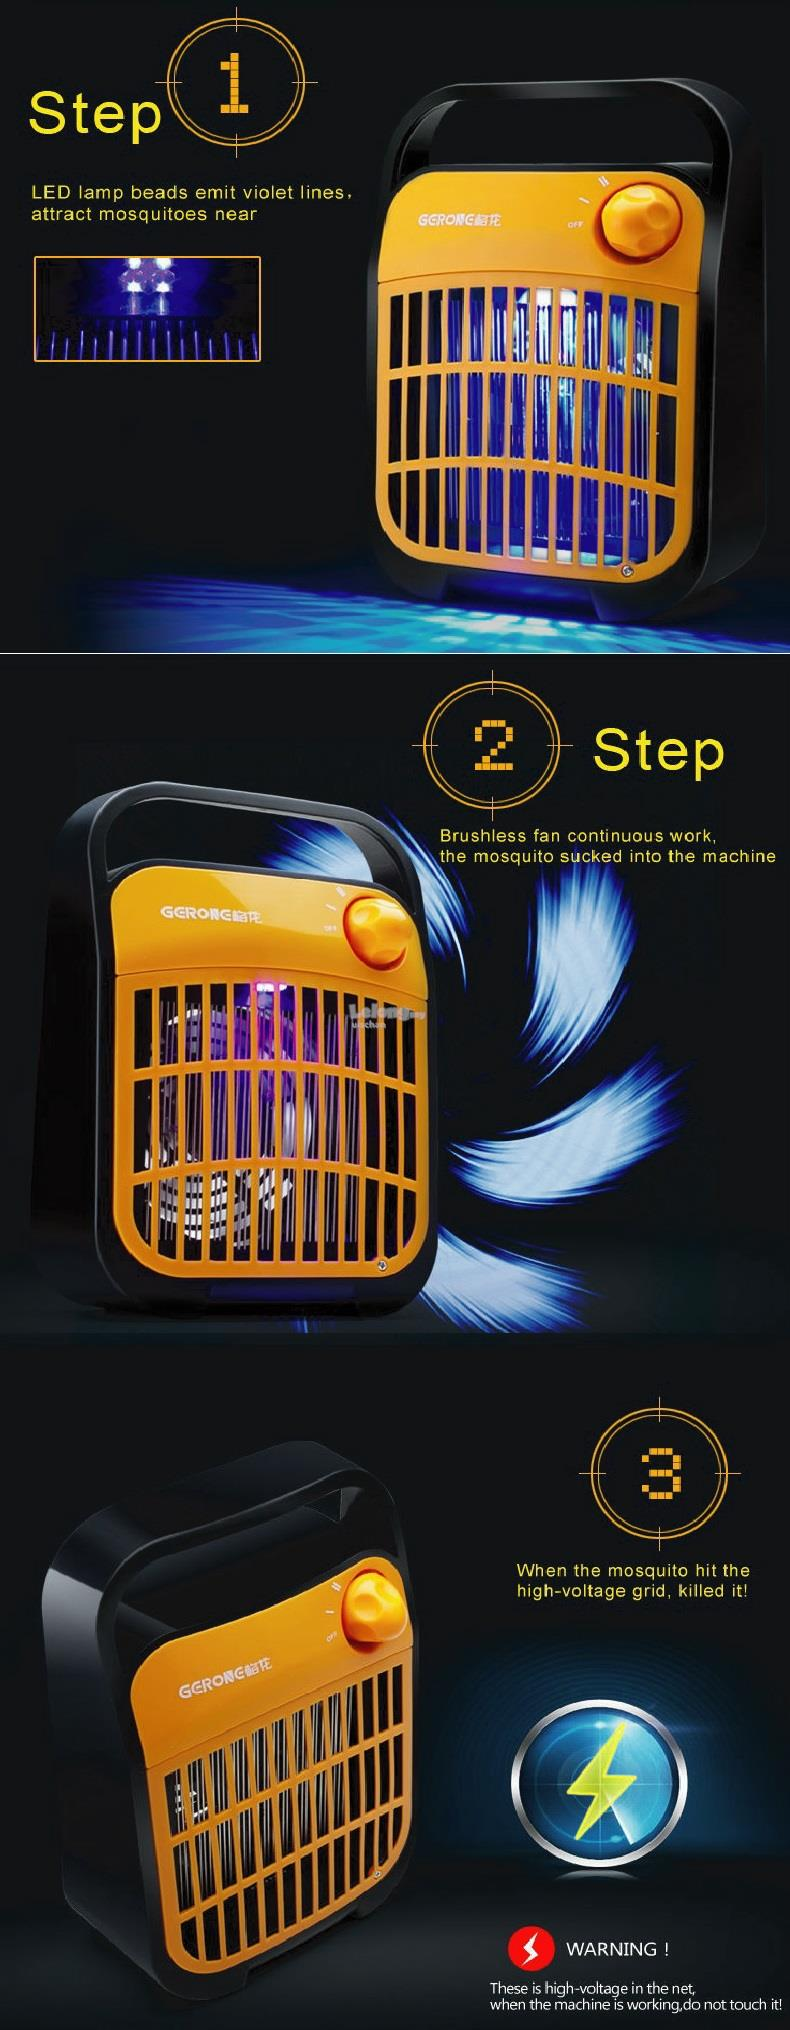 31 Great Electric Mosquito Killer Circuit Mini Led Night Lamp Homemade Electronic Projects Awesome Killing Trap Eco Friendly With